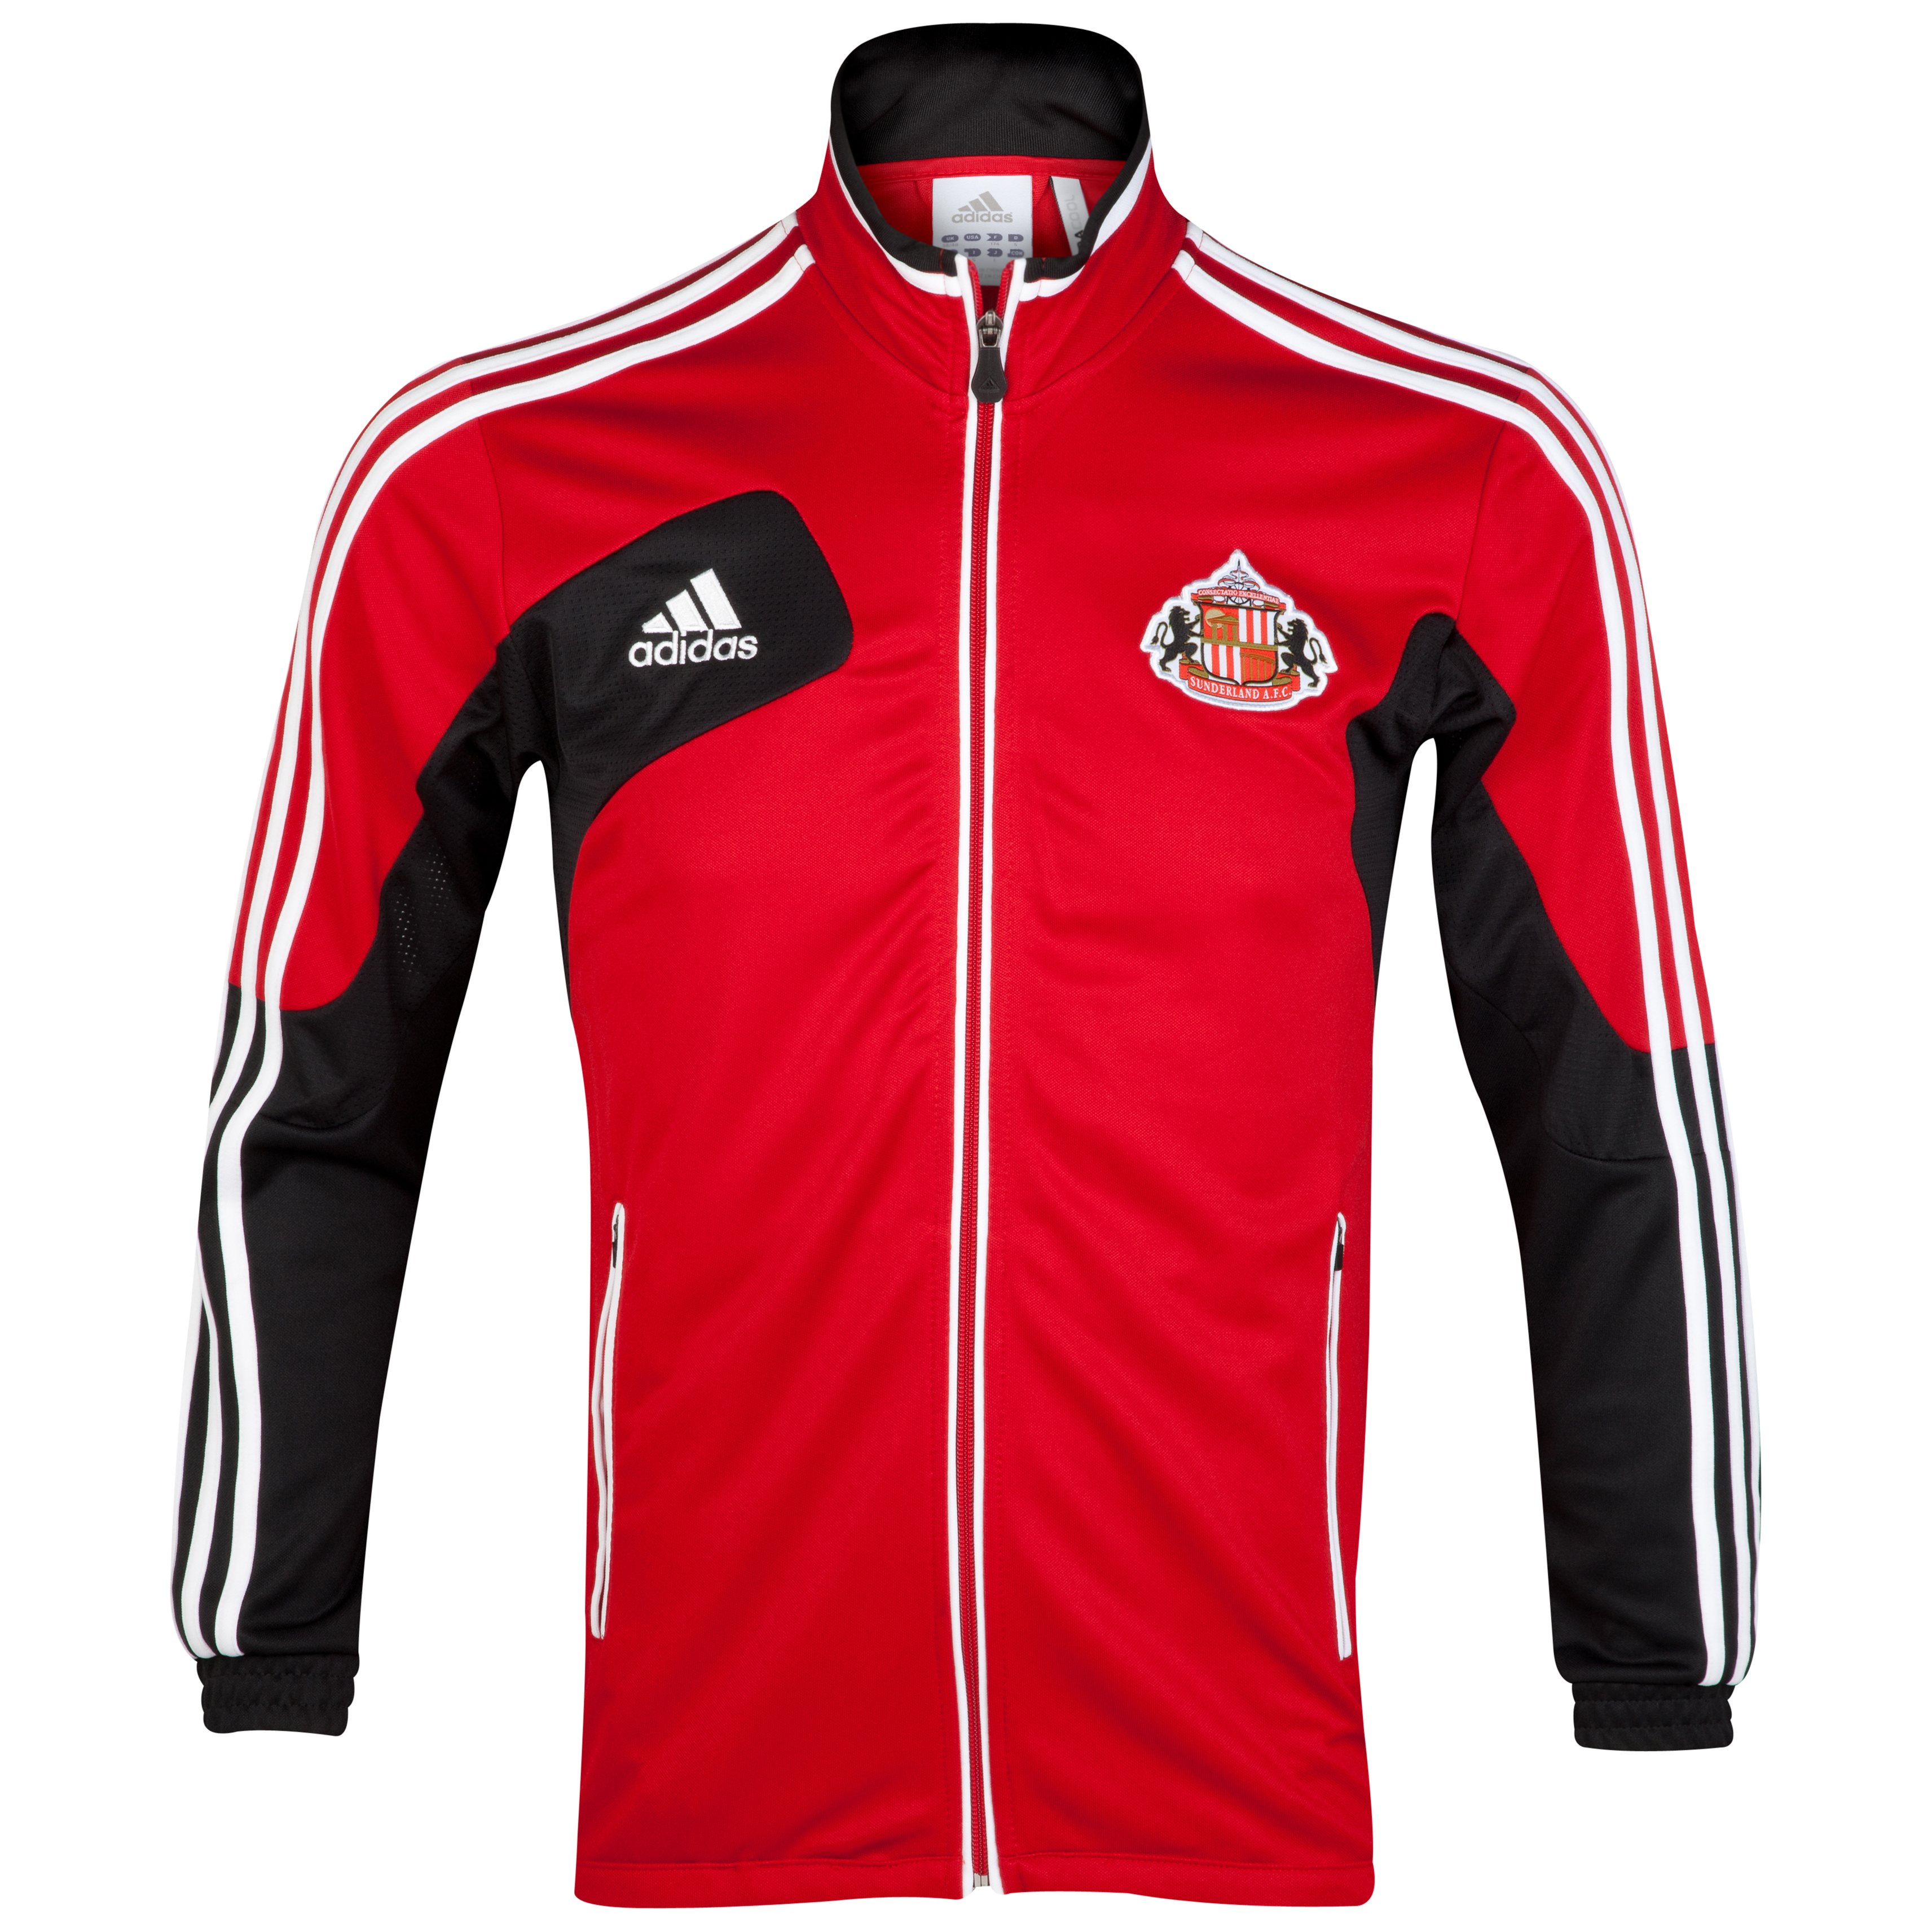 Sunderland Condivo Training Jacket - University Red/Black/White